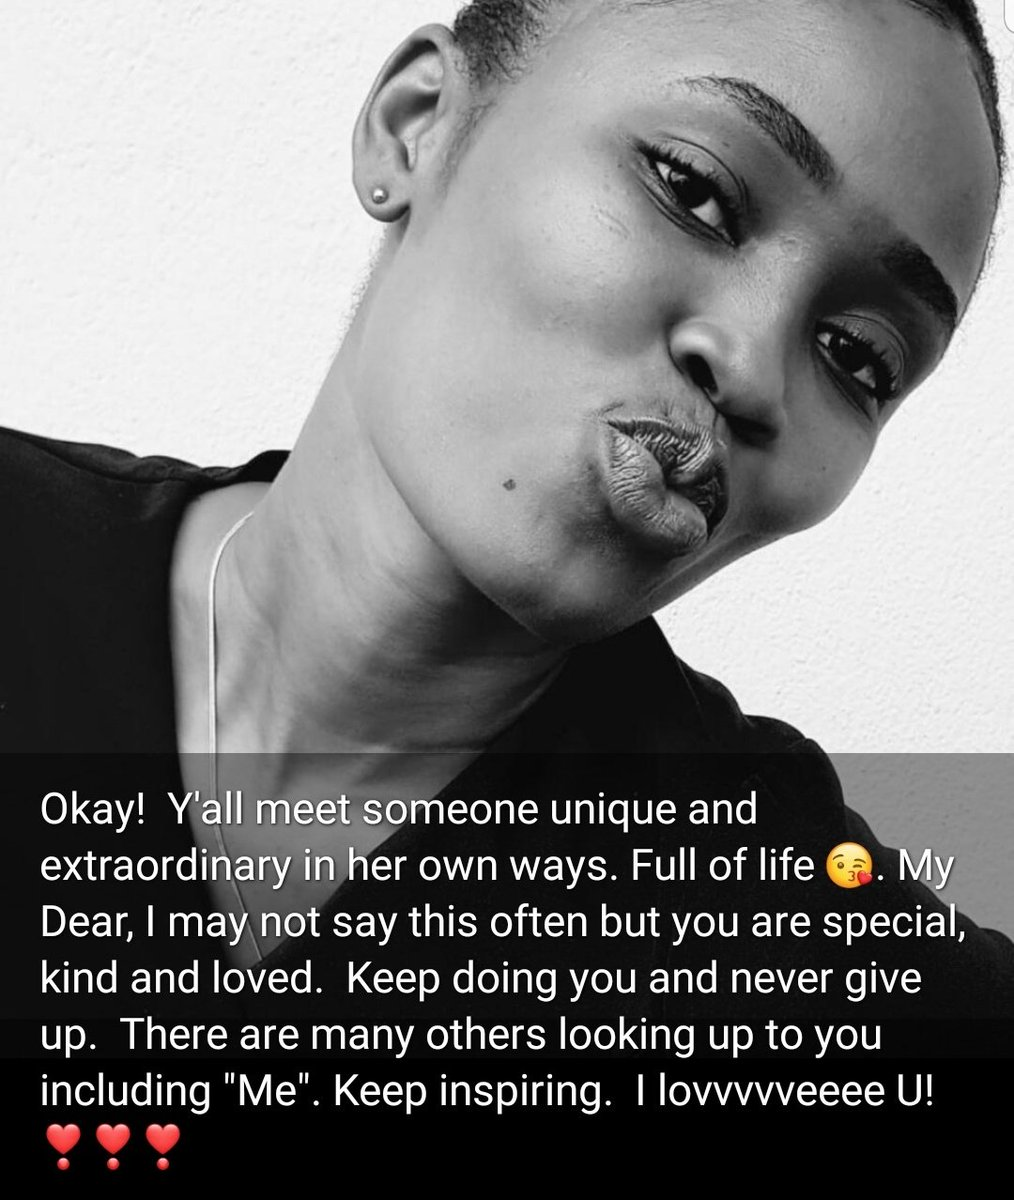 You are so kind, Debbie. Thanks for letting me know. I am inspired even more, as I beat the odds of time. Im humble to all of you who look up to me for inspiration in whatever youre doing. To God be praise🙏🏿 Proud of you, young lady❤